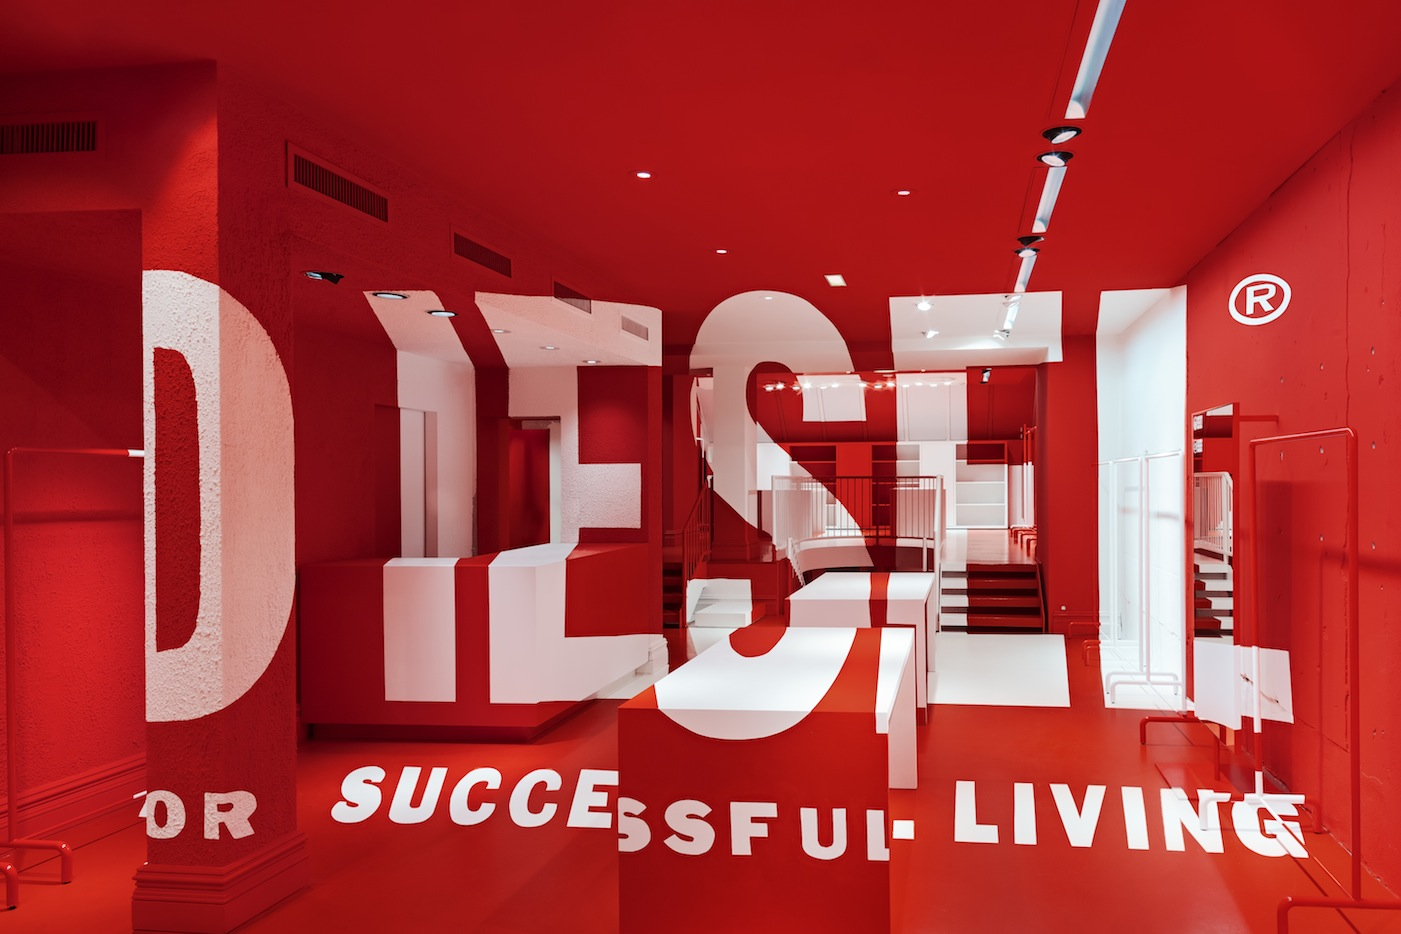 Diesel kicks off new retail strategy